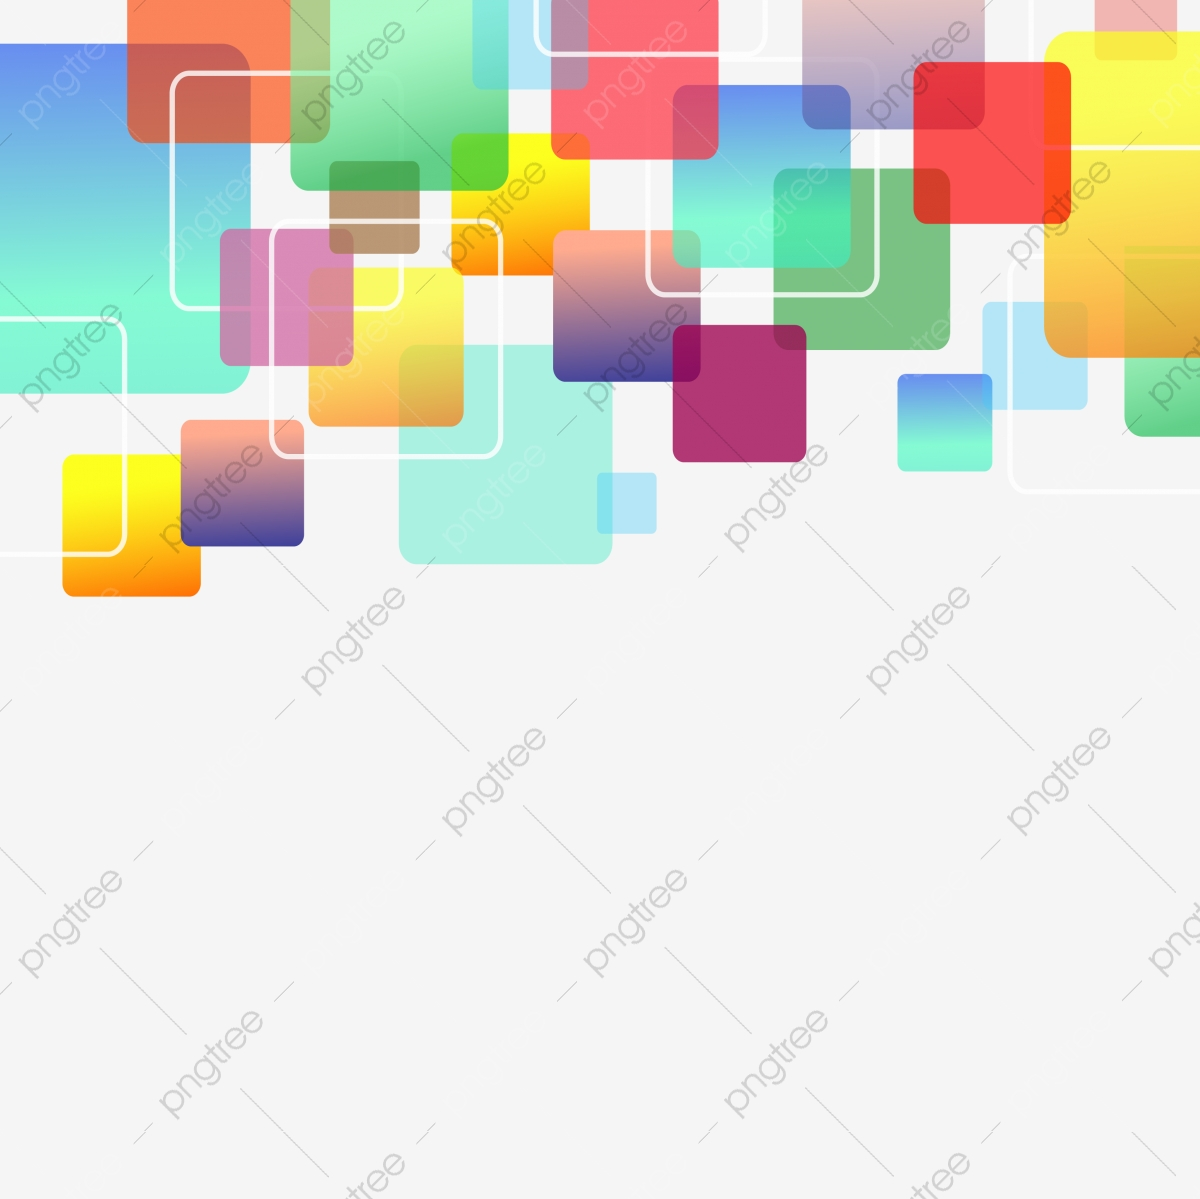 Colorful Abstract Square Pattern Background Abstract Square Geometric Png And Vector With Transparent Background For Free Download